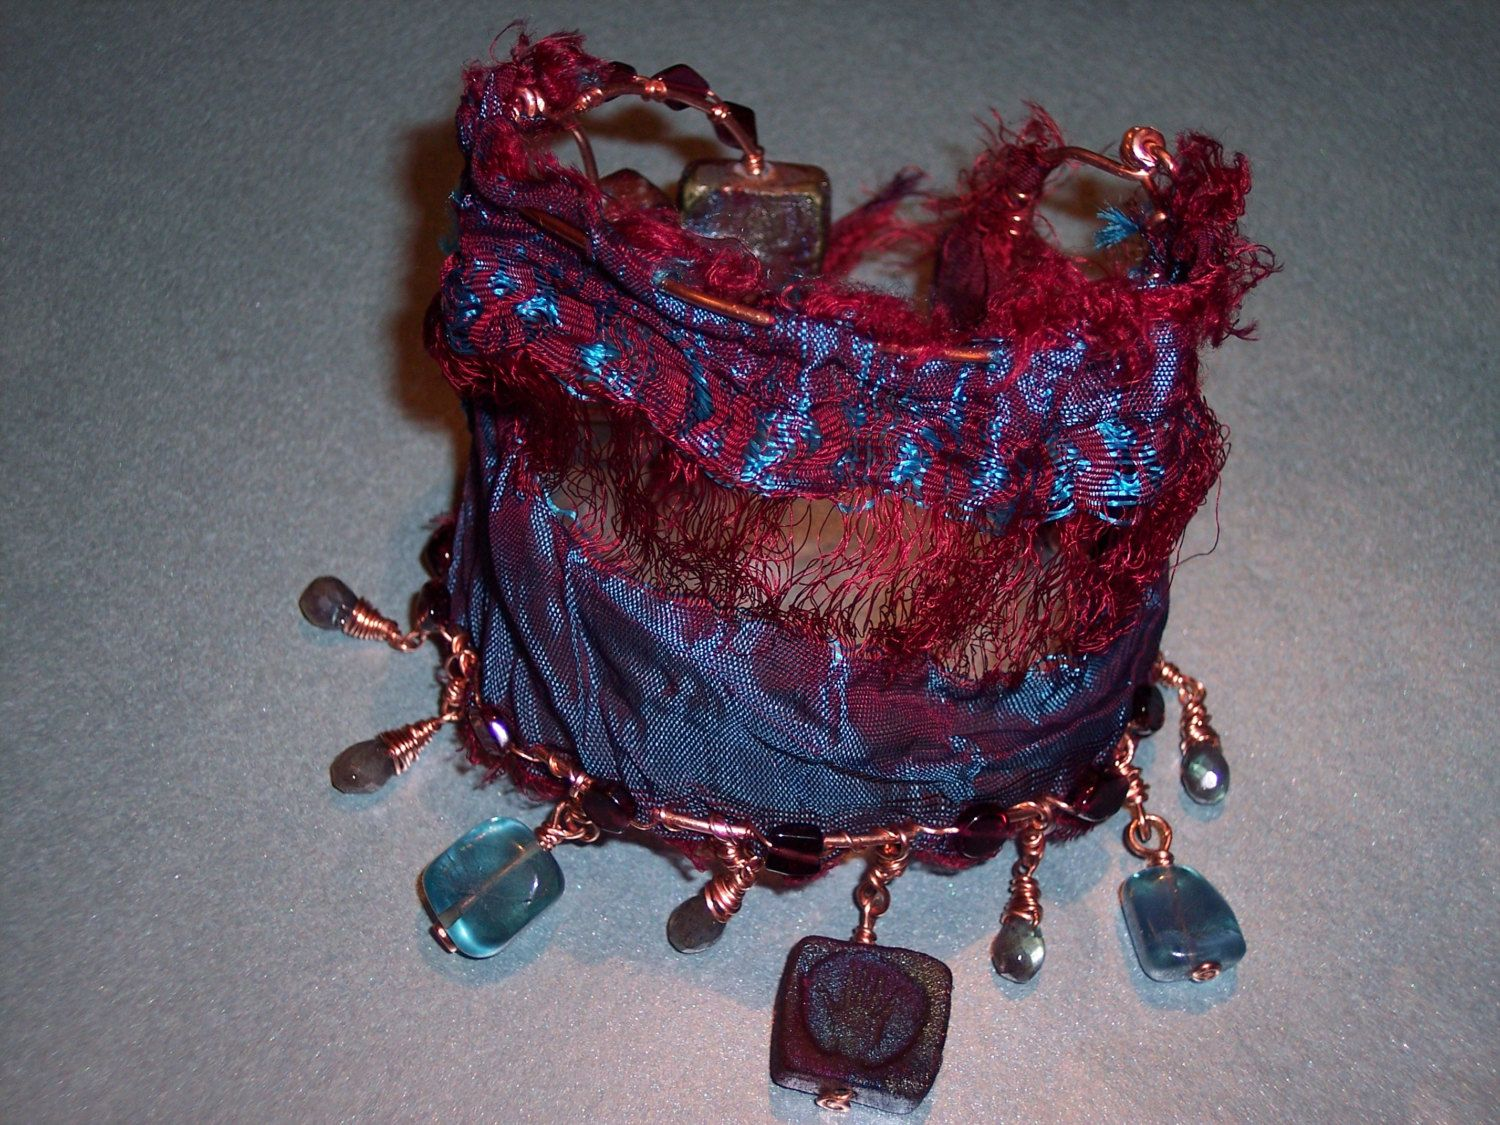 Red Hot and Righteous Blues  upcycled Sari silk and gemstone cuff bracelet. Raku, Labradorite, and Garnet #PyxeeStyx #TravelingSideShow #SRAJD